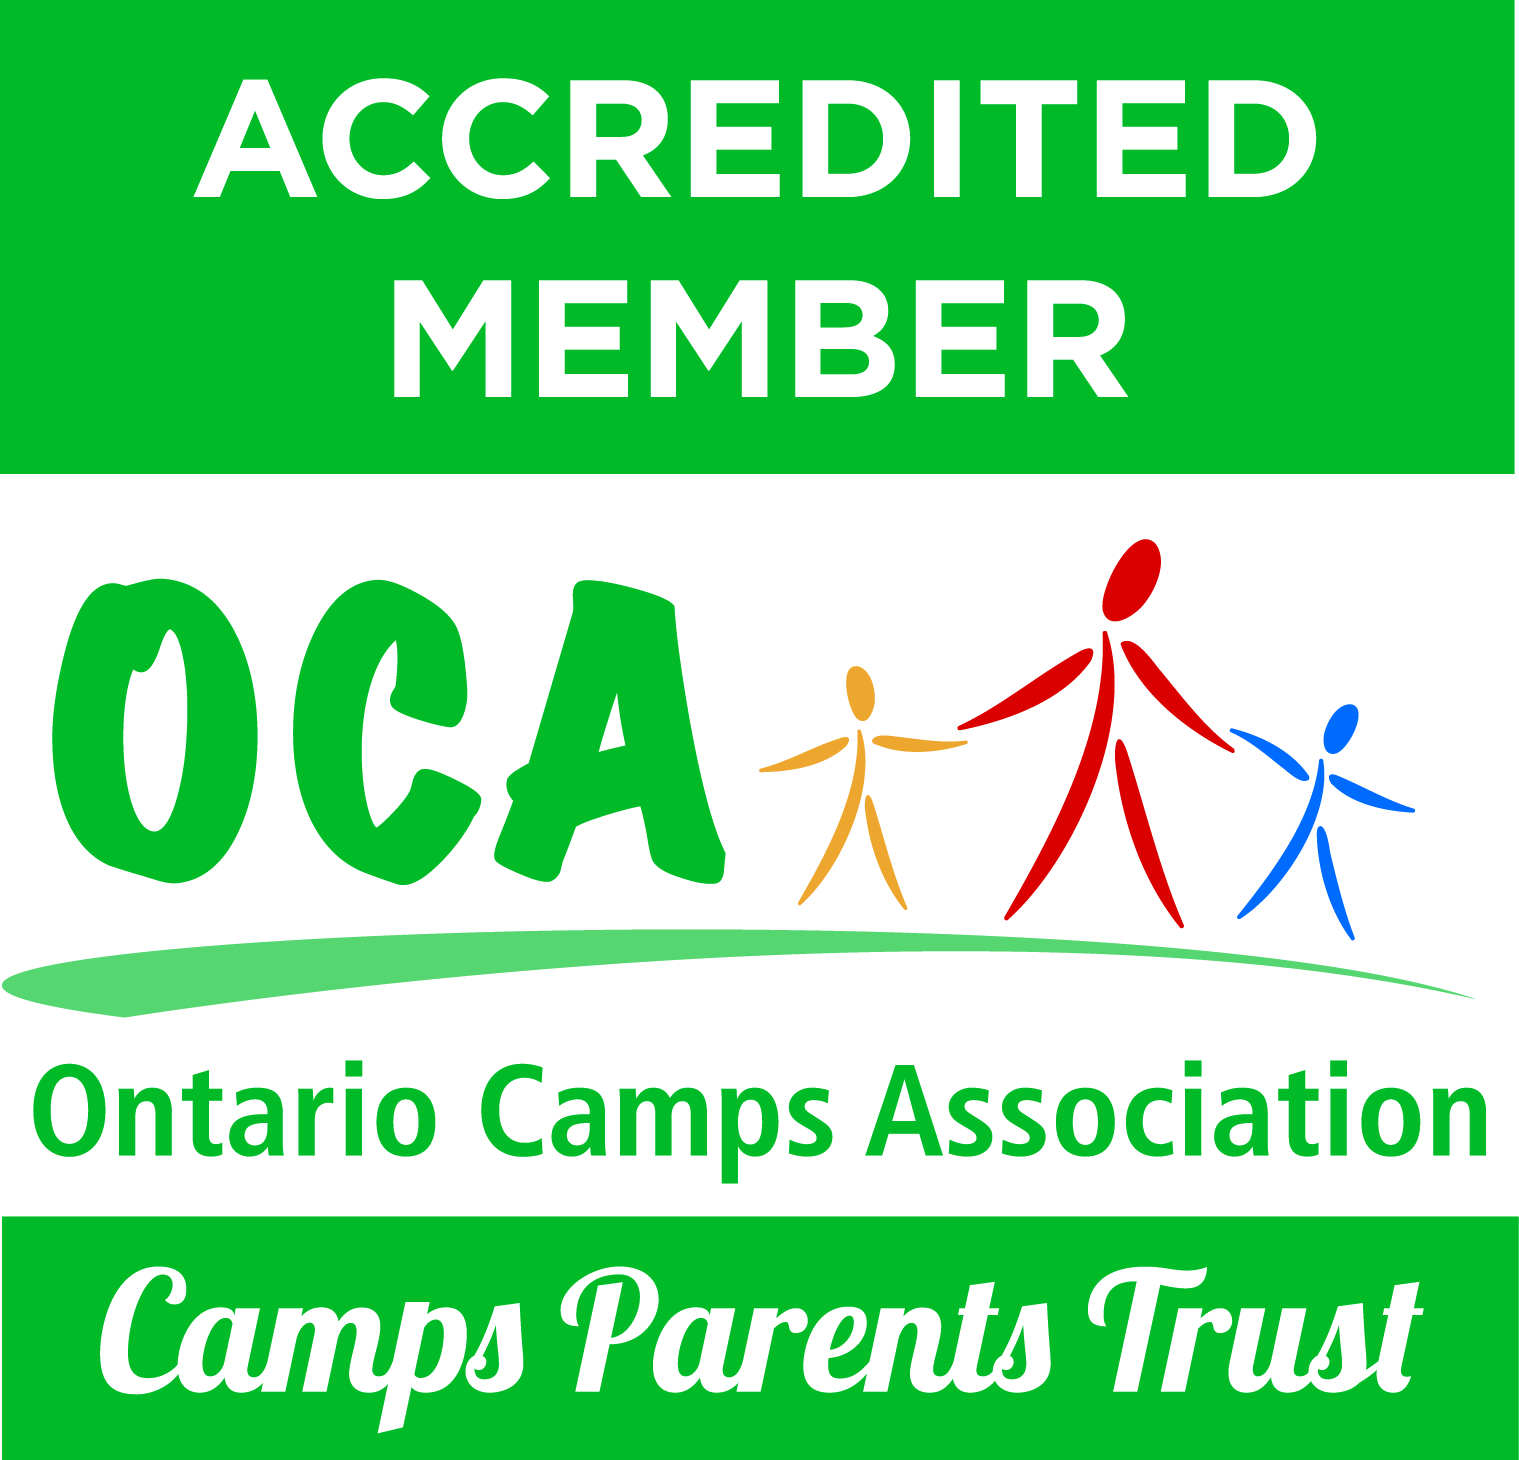 Ontario Camps Association